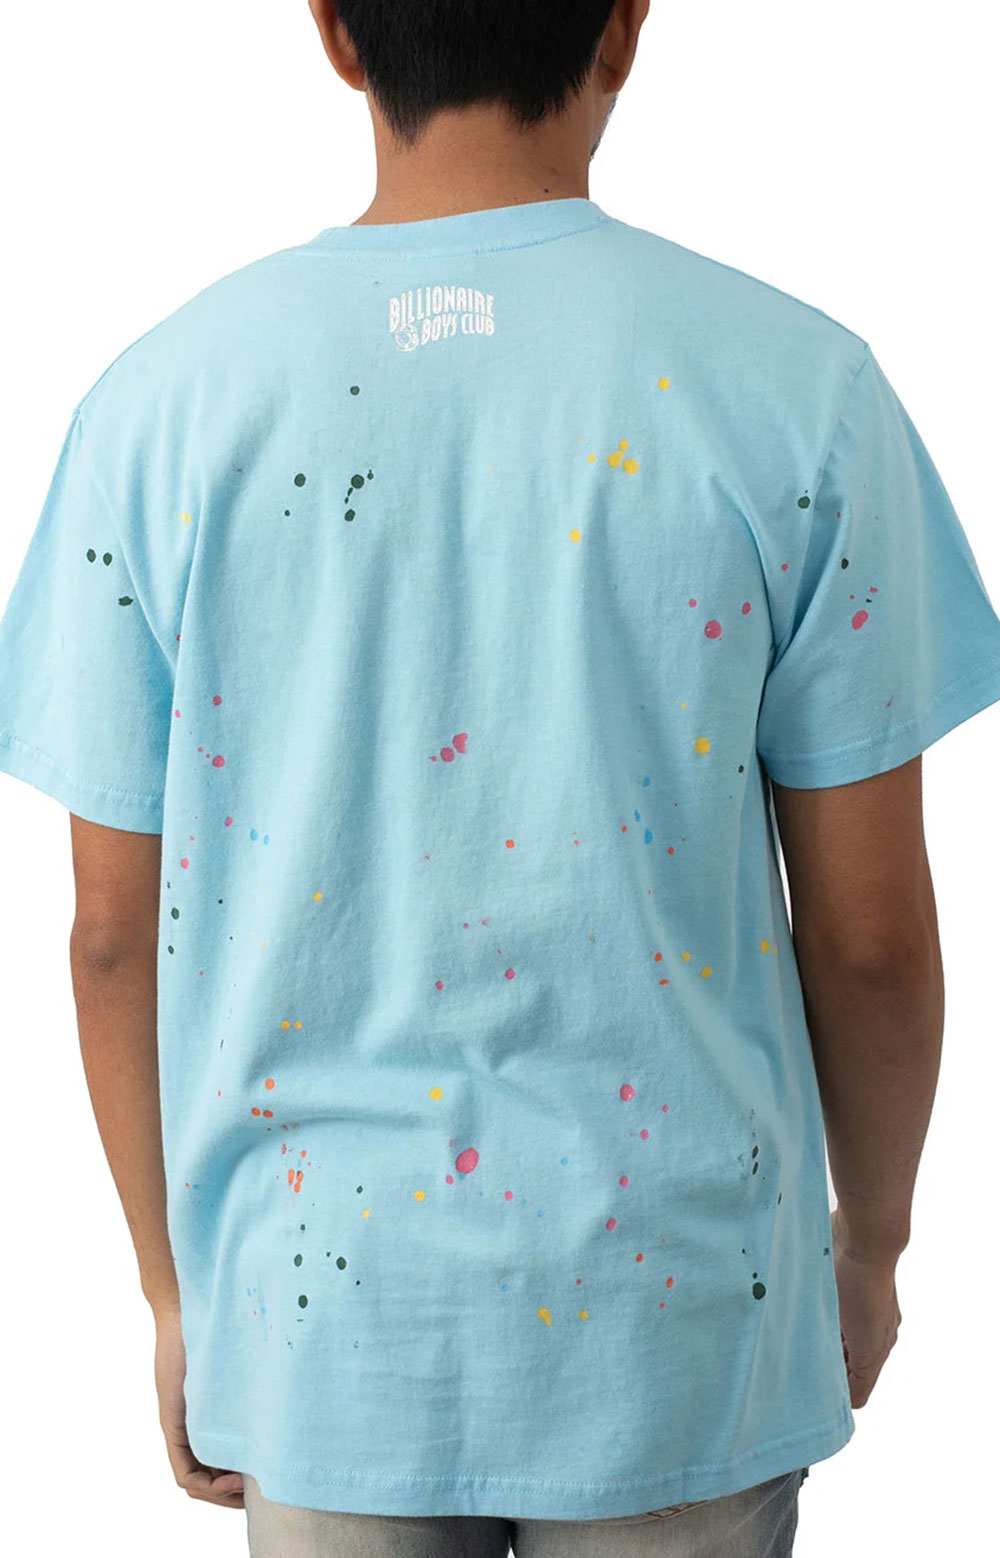 BB Astro Spattered SS Knit T-Shirt - Sky Blue  3